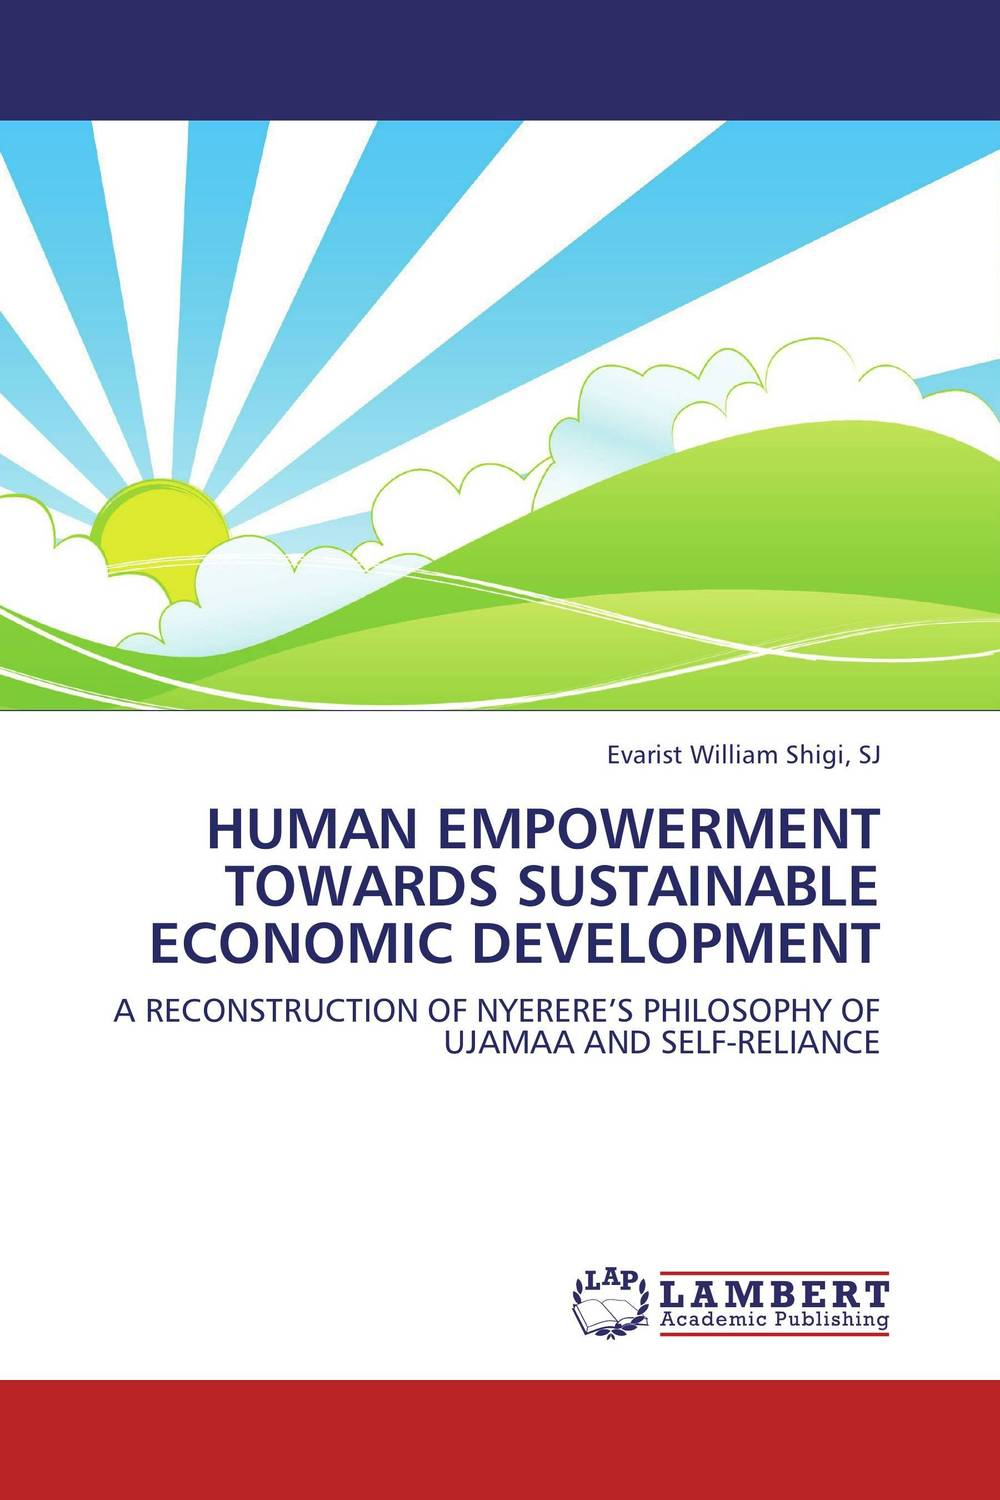 Human empowerment towards sustainable economic development emerging issues on sustainable urban development